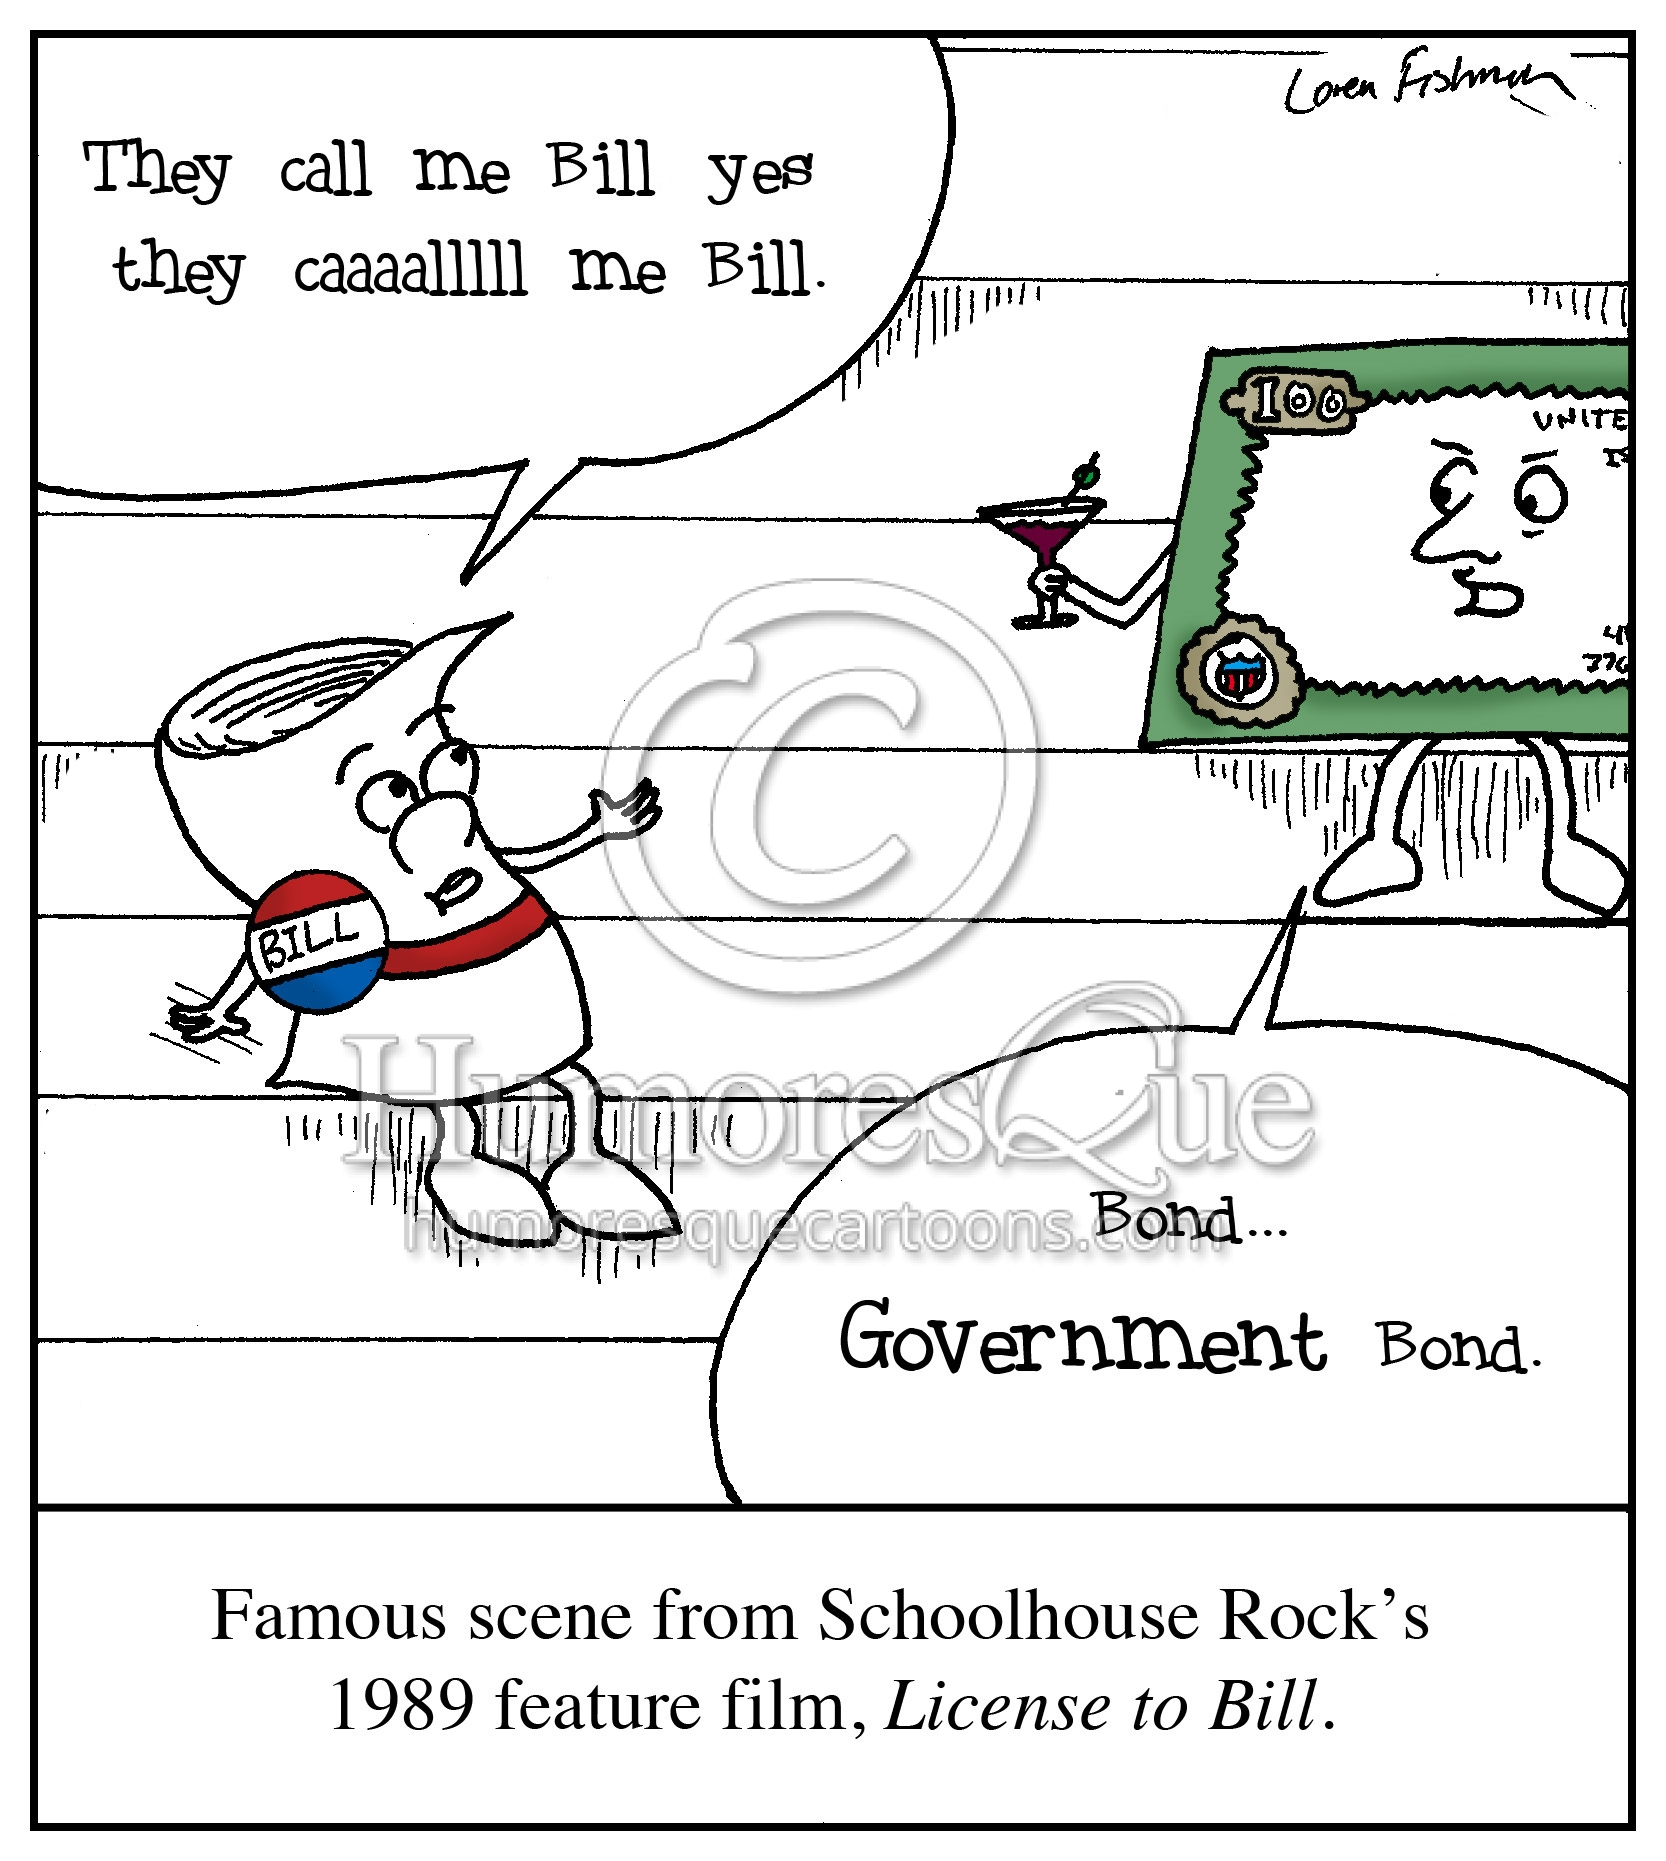 license to bill schoolhouse rock parody cartoon